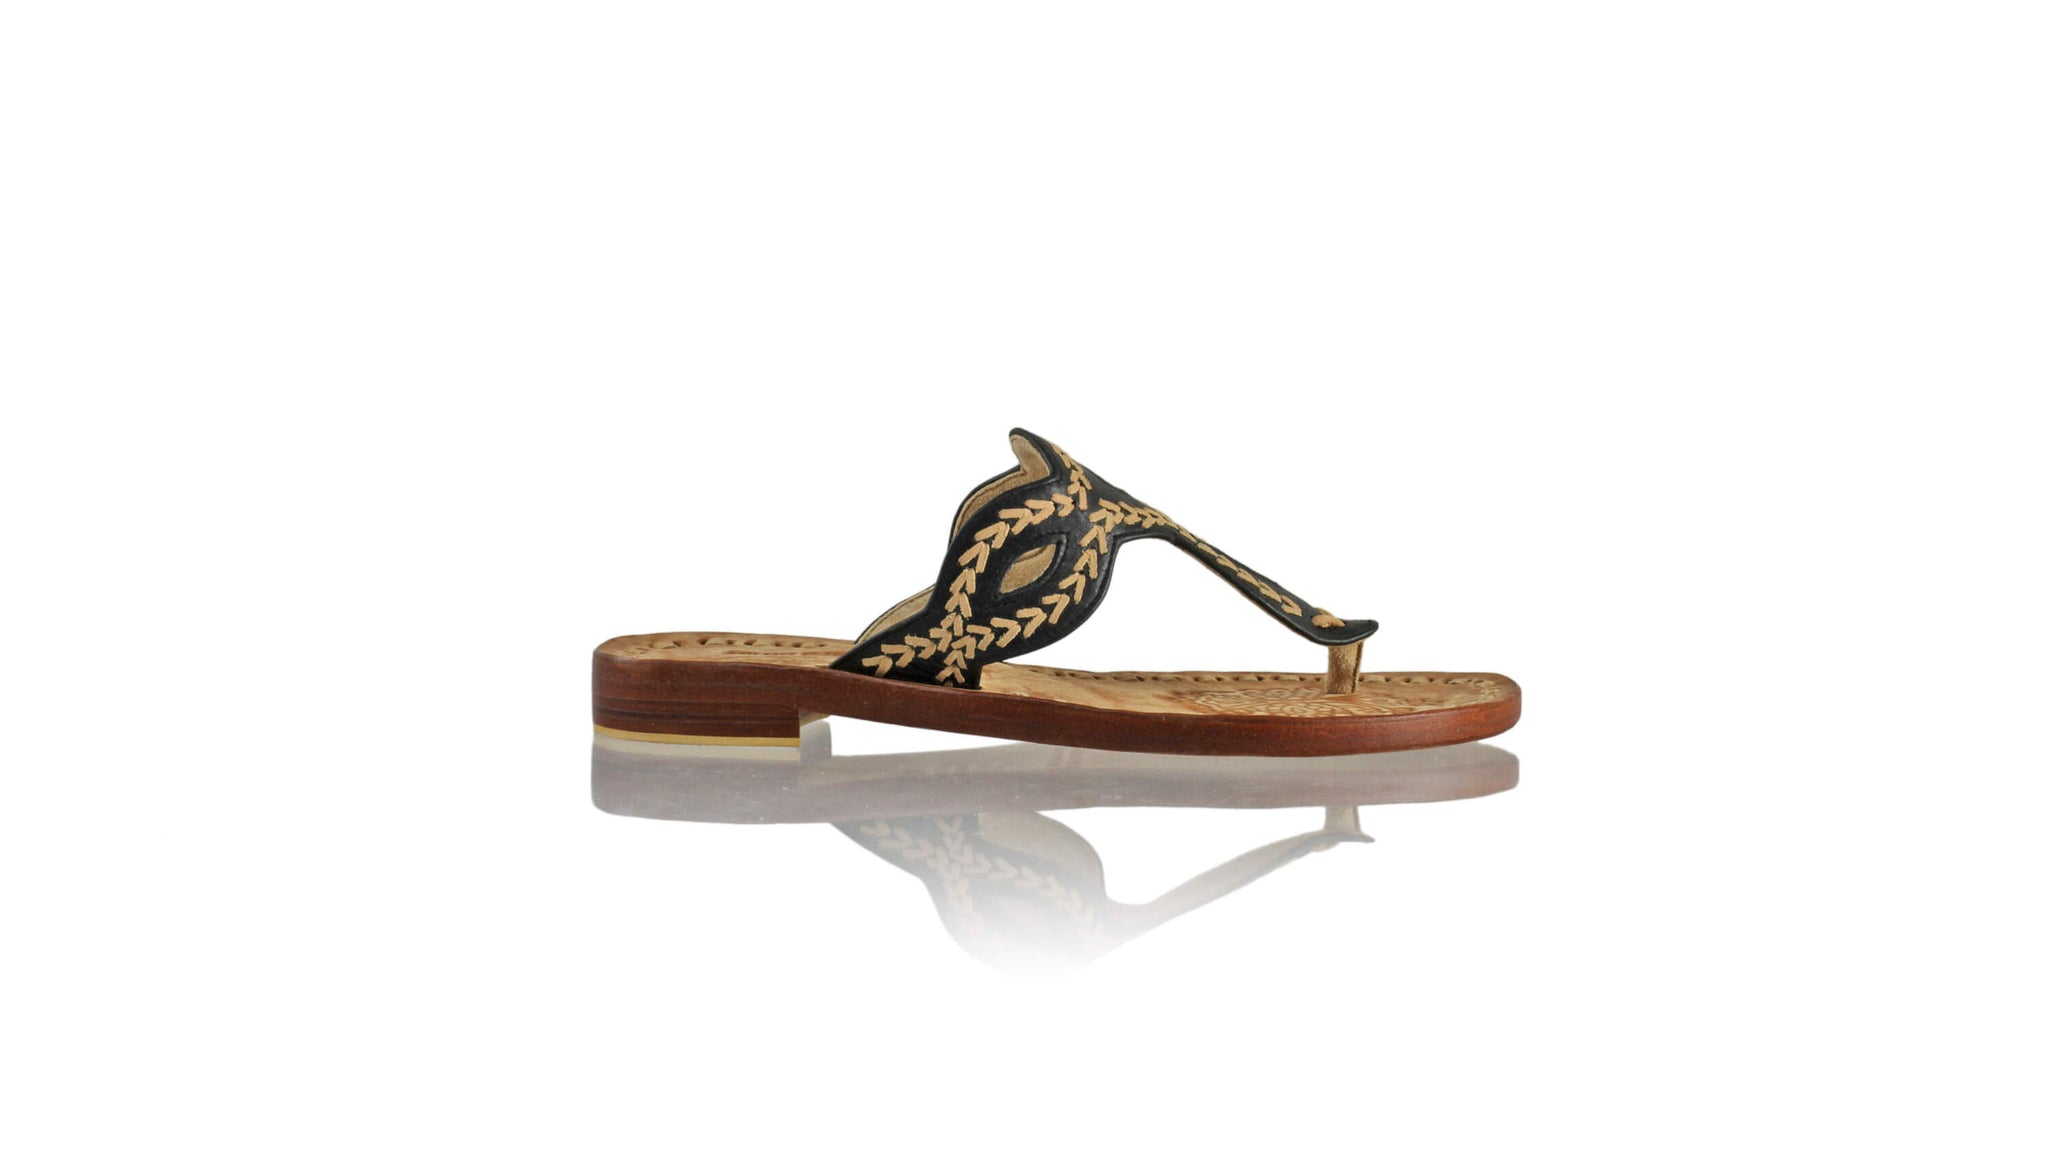 Leather-shoes-Africa 20mm Flat - Black & Nude-sandals flat-NILUH DJELANTIK-NILUH DJELANTIK